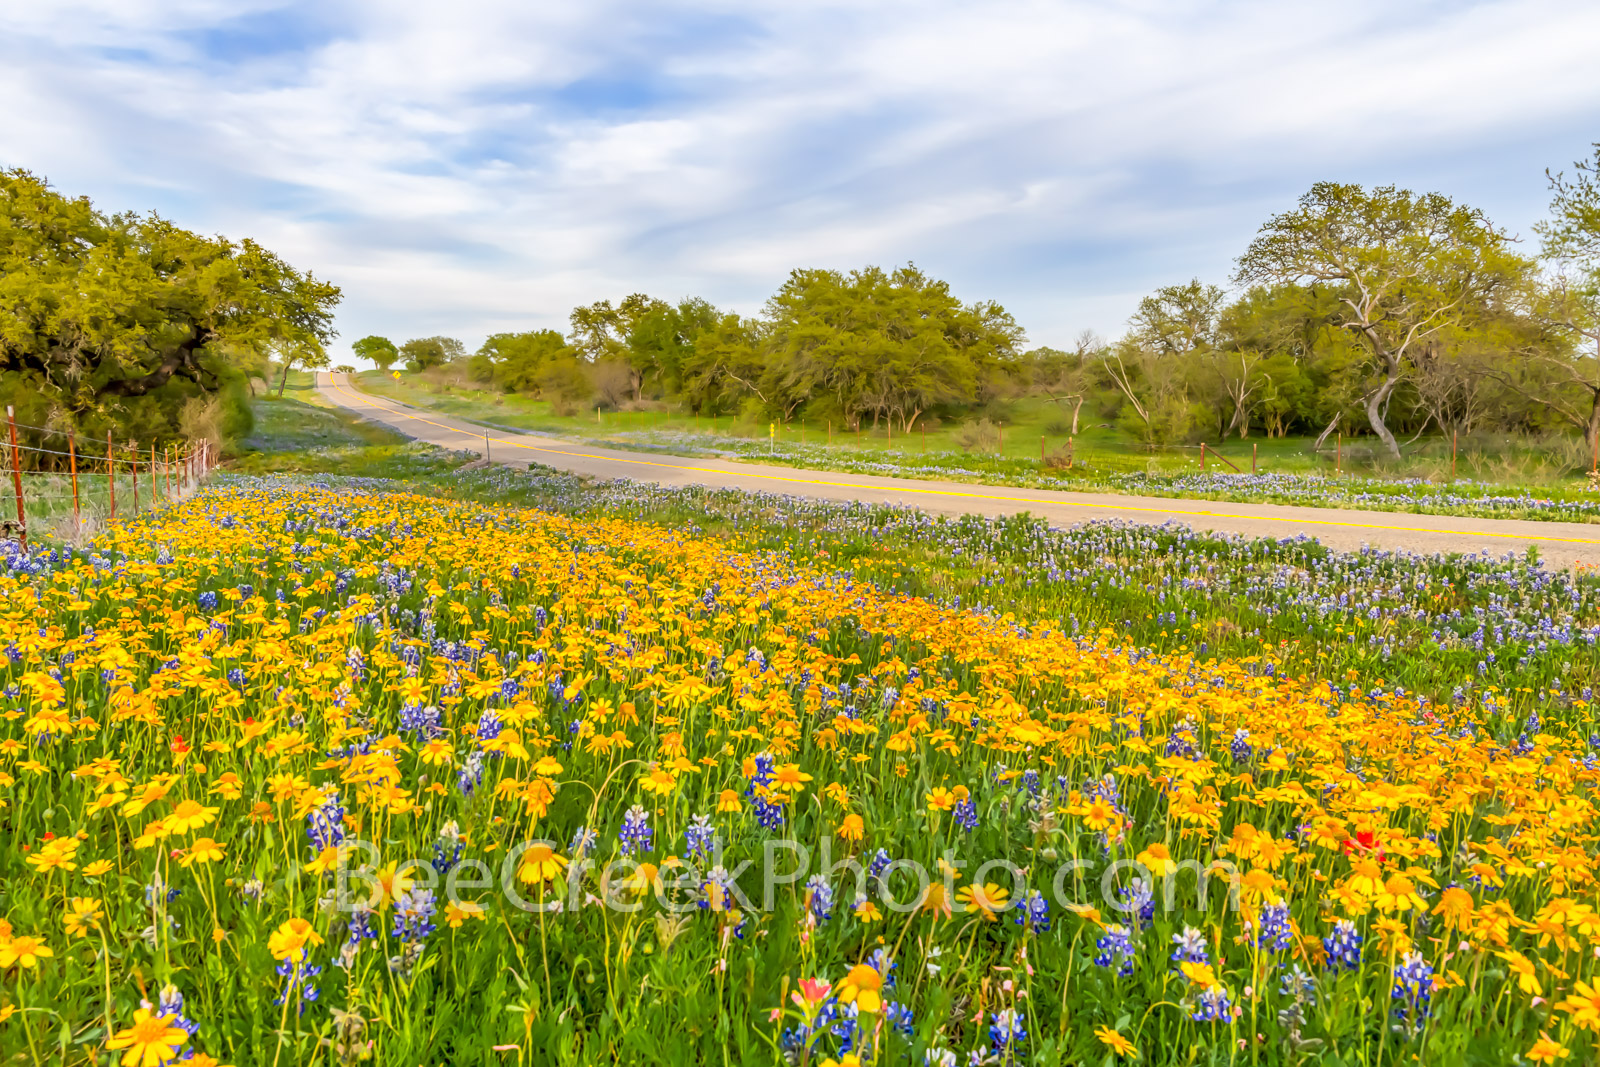 Roadside Wildflower Landscape, texas wldflowers, perky sues, yellow stars, bluebonnets, indian paintbrush, mesquite, road, texas hill country, hill country wildflowers, spring, landscape, texas landsc, photo